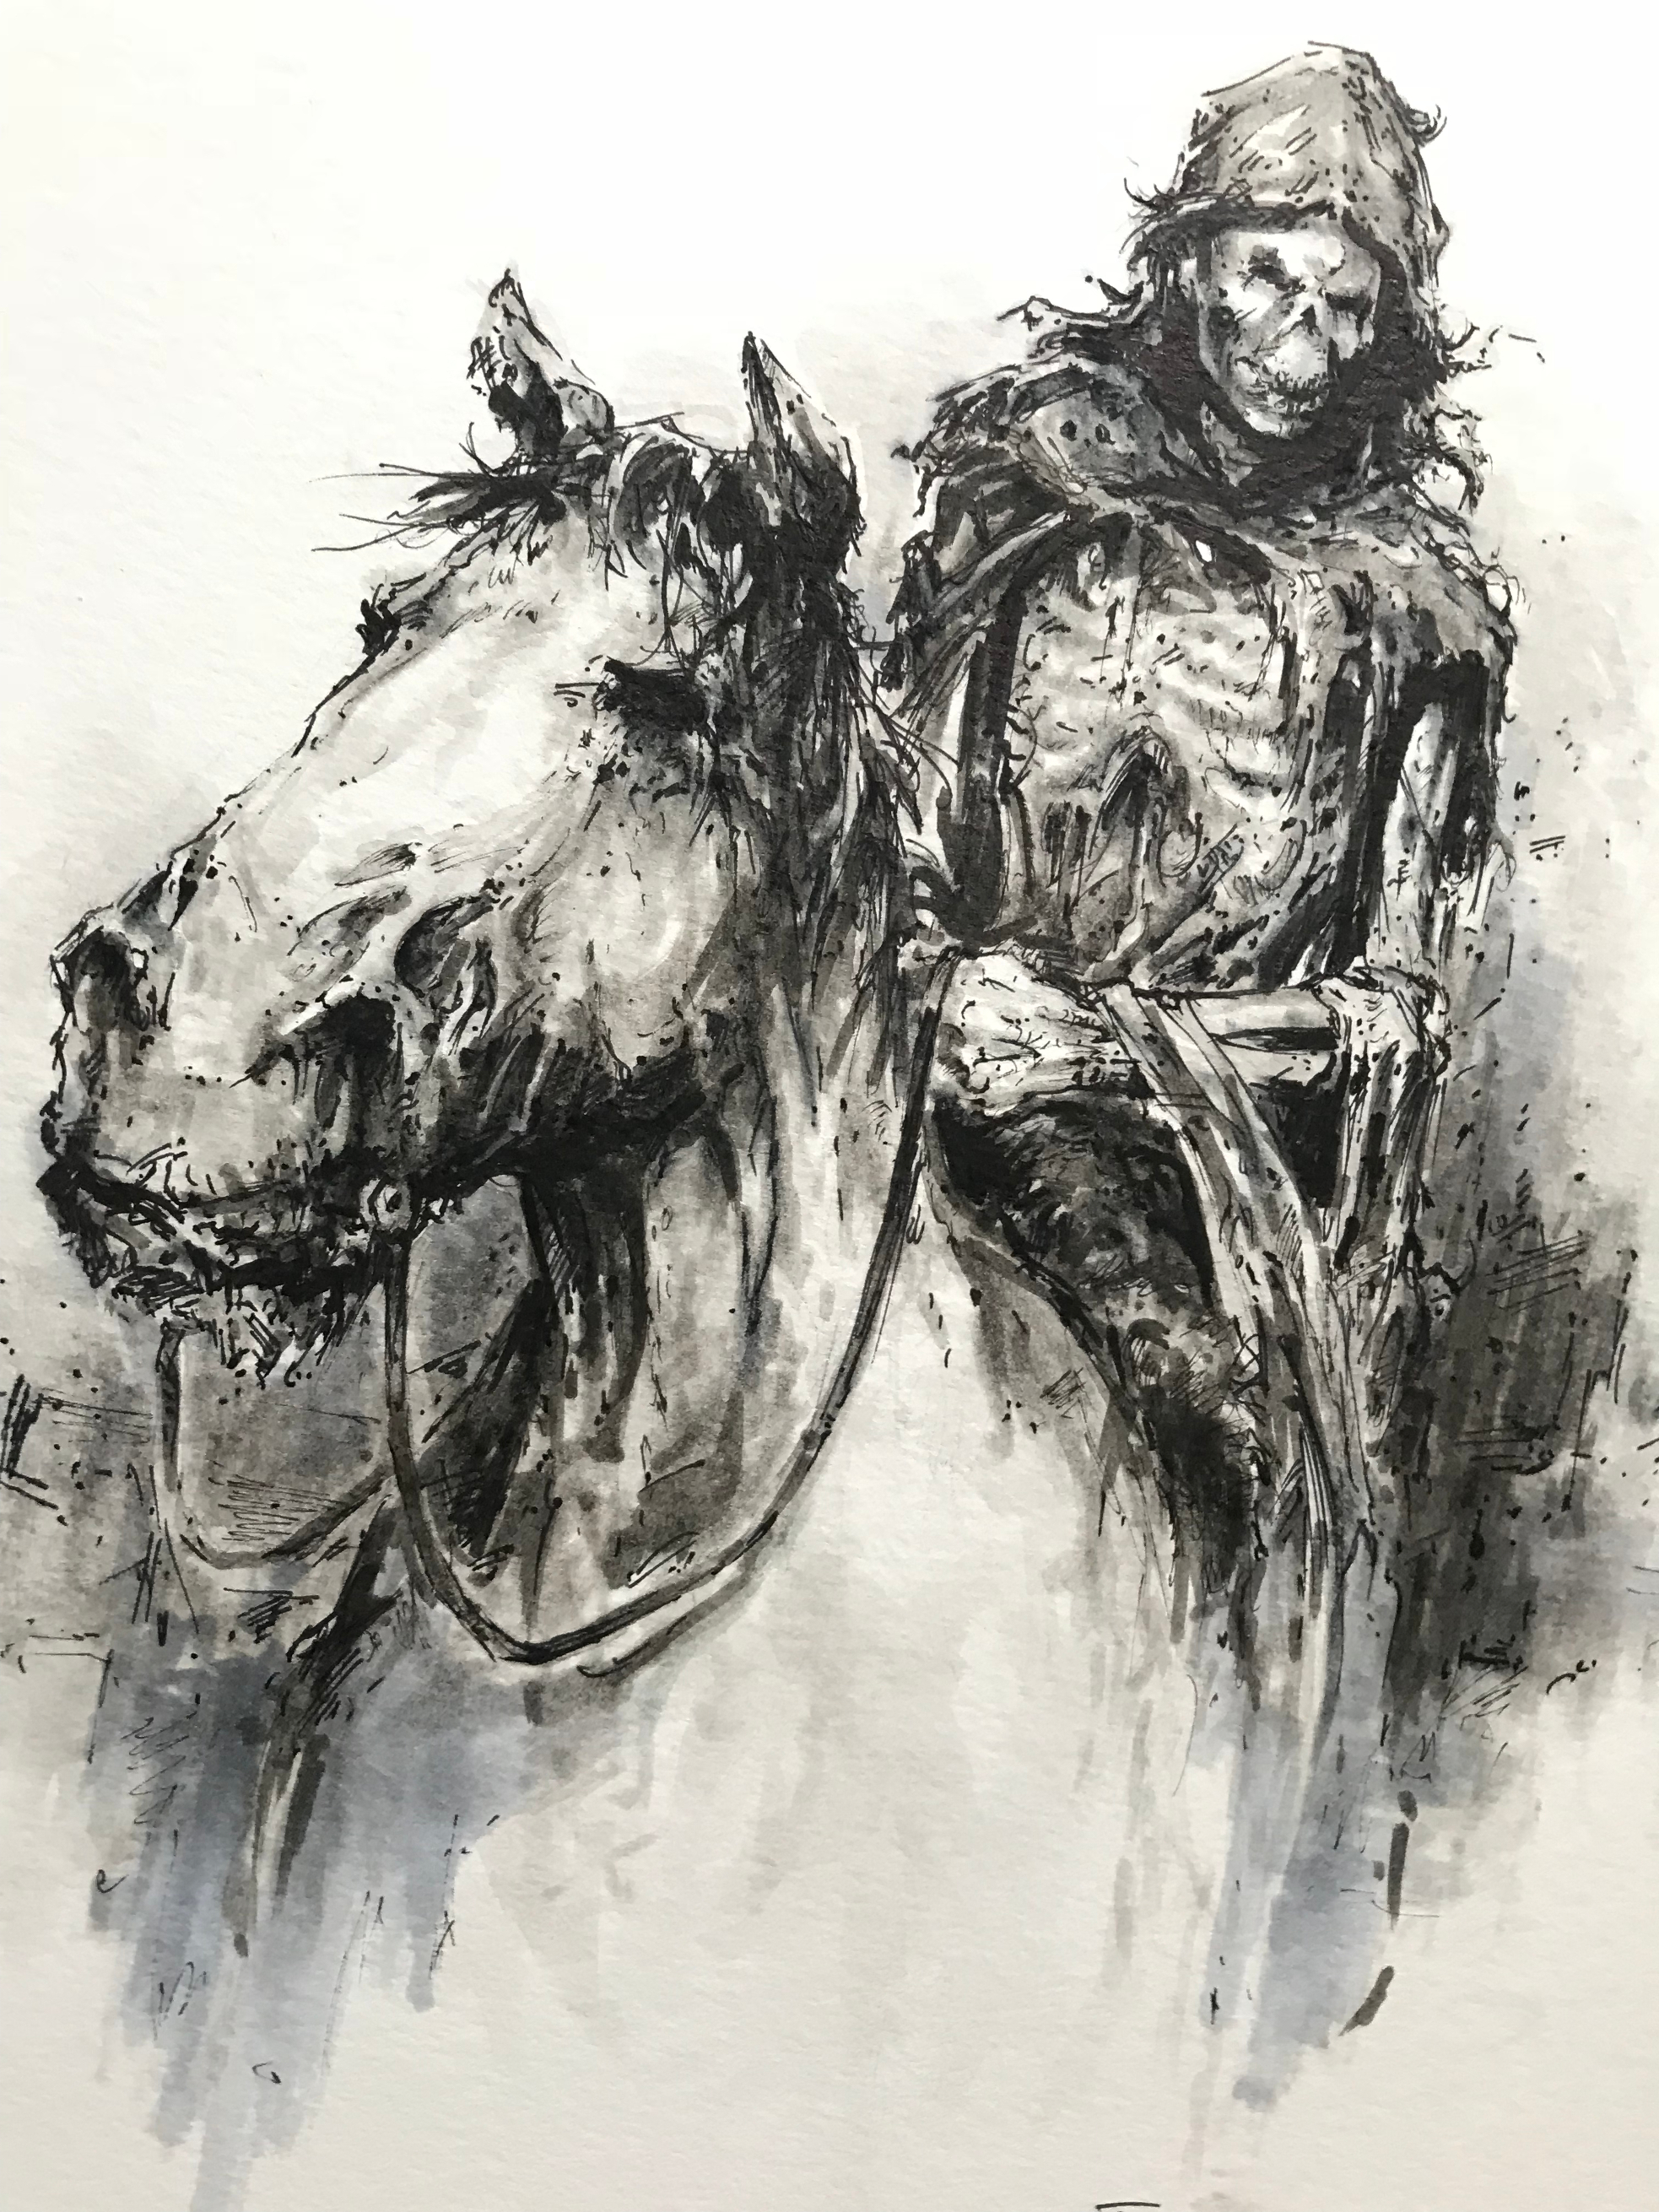 Skeleton Rider Tim Edwards Creative Visions Online Store Powered By Storenvy